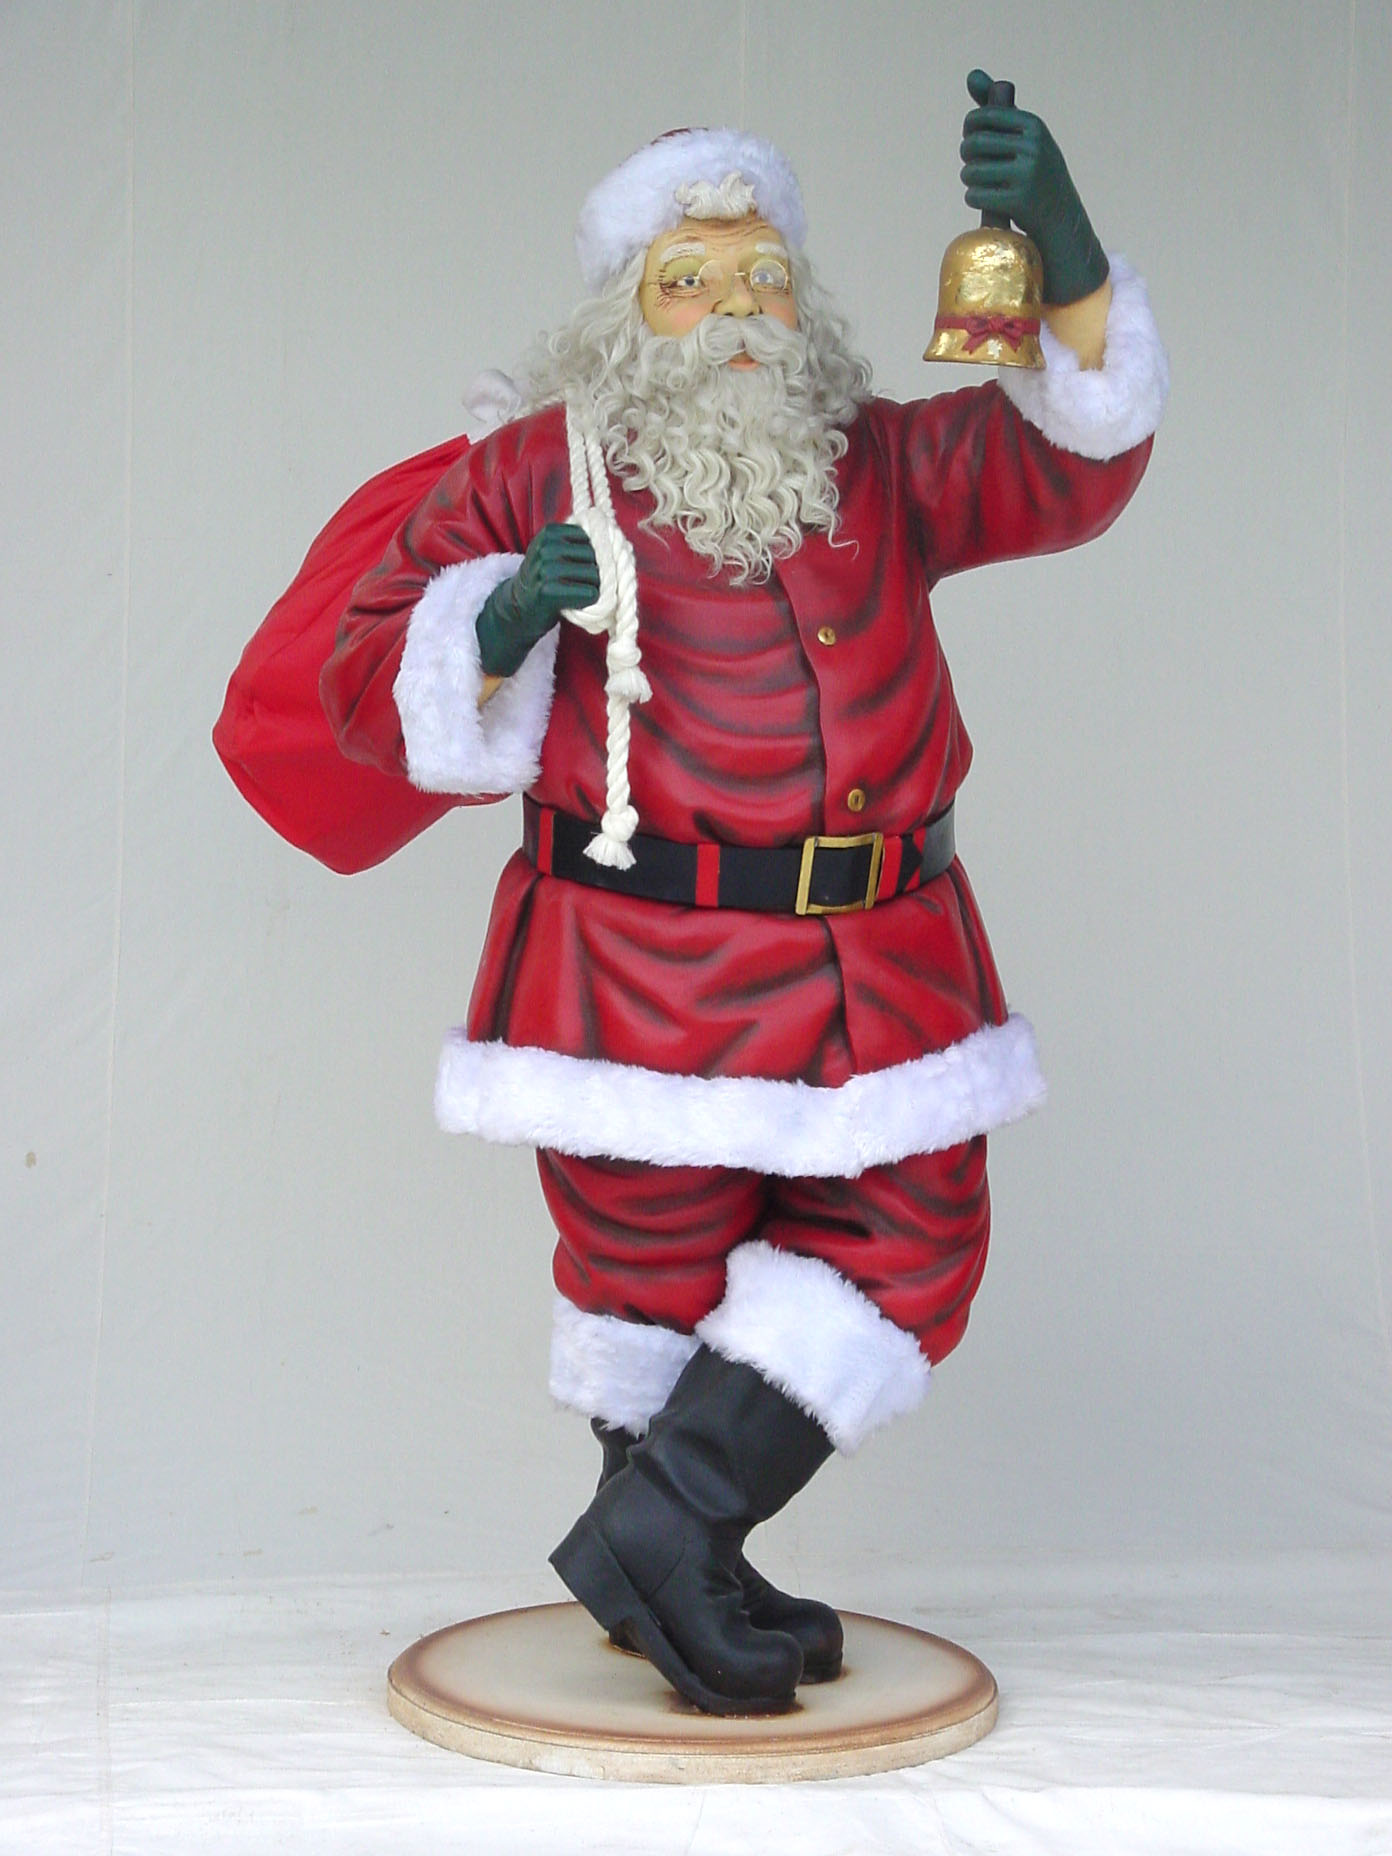 Santa claus with bell statue christmas decor life size 6ft for Santa decorations